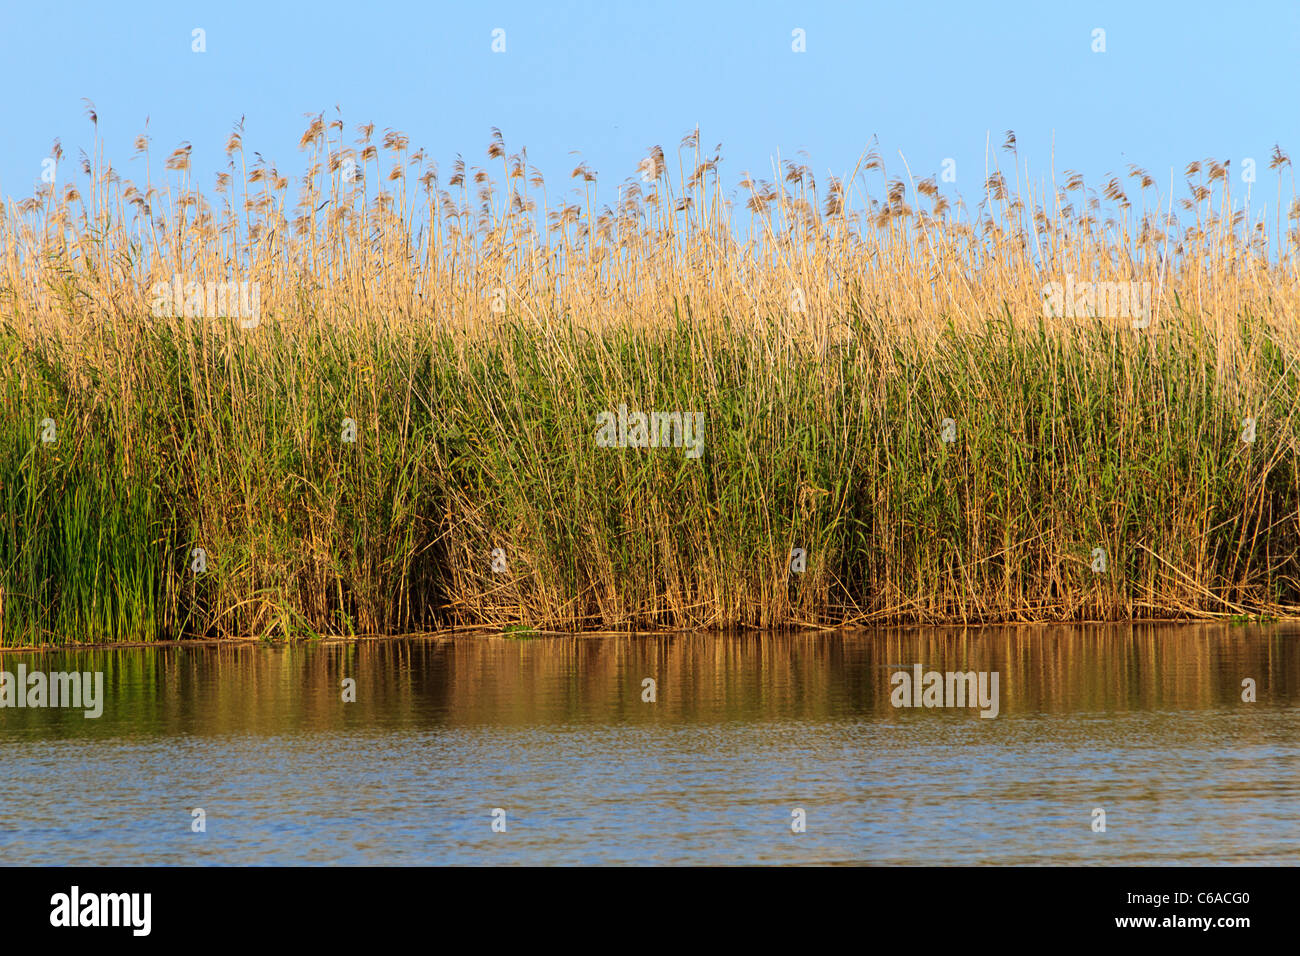 Sea oats and sawgrass along the Apalachicola River in the town of Apalachicola along the Florida Panhandle. - Stock Image